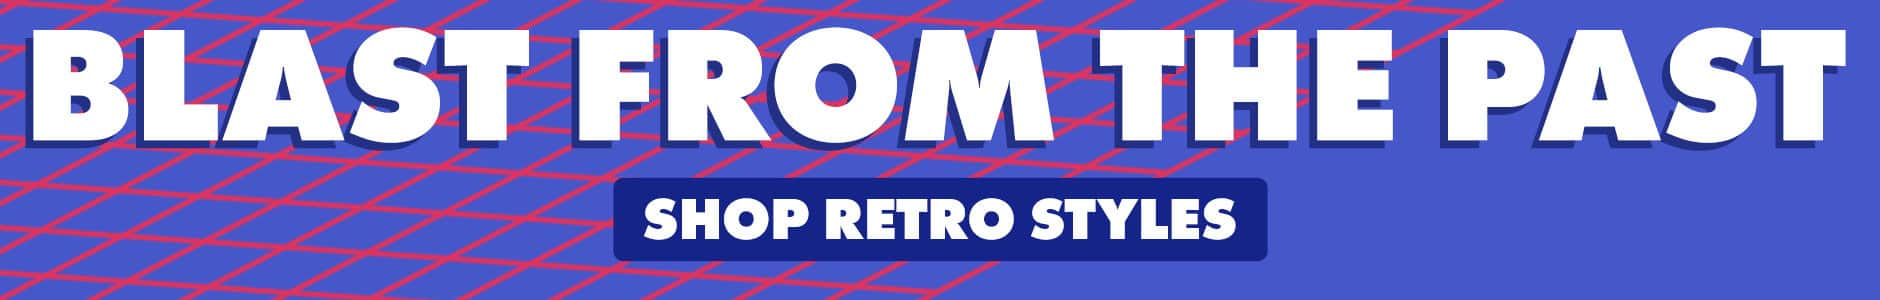 Shop the Retro Collection